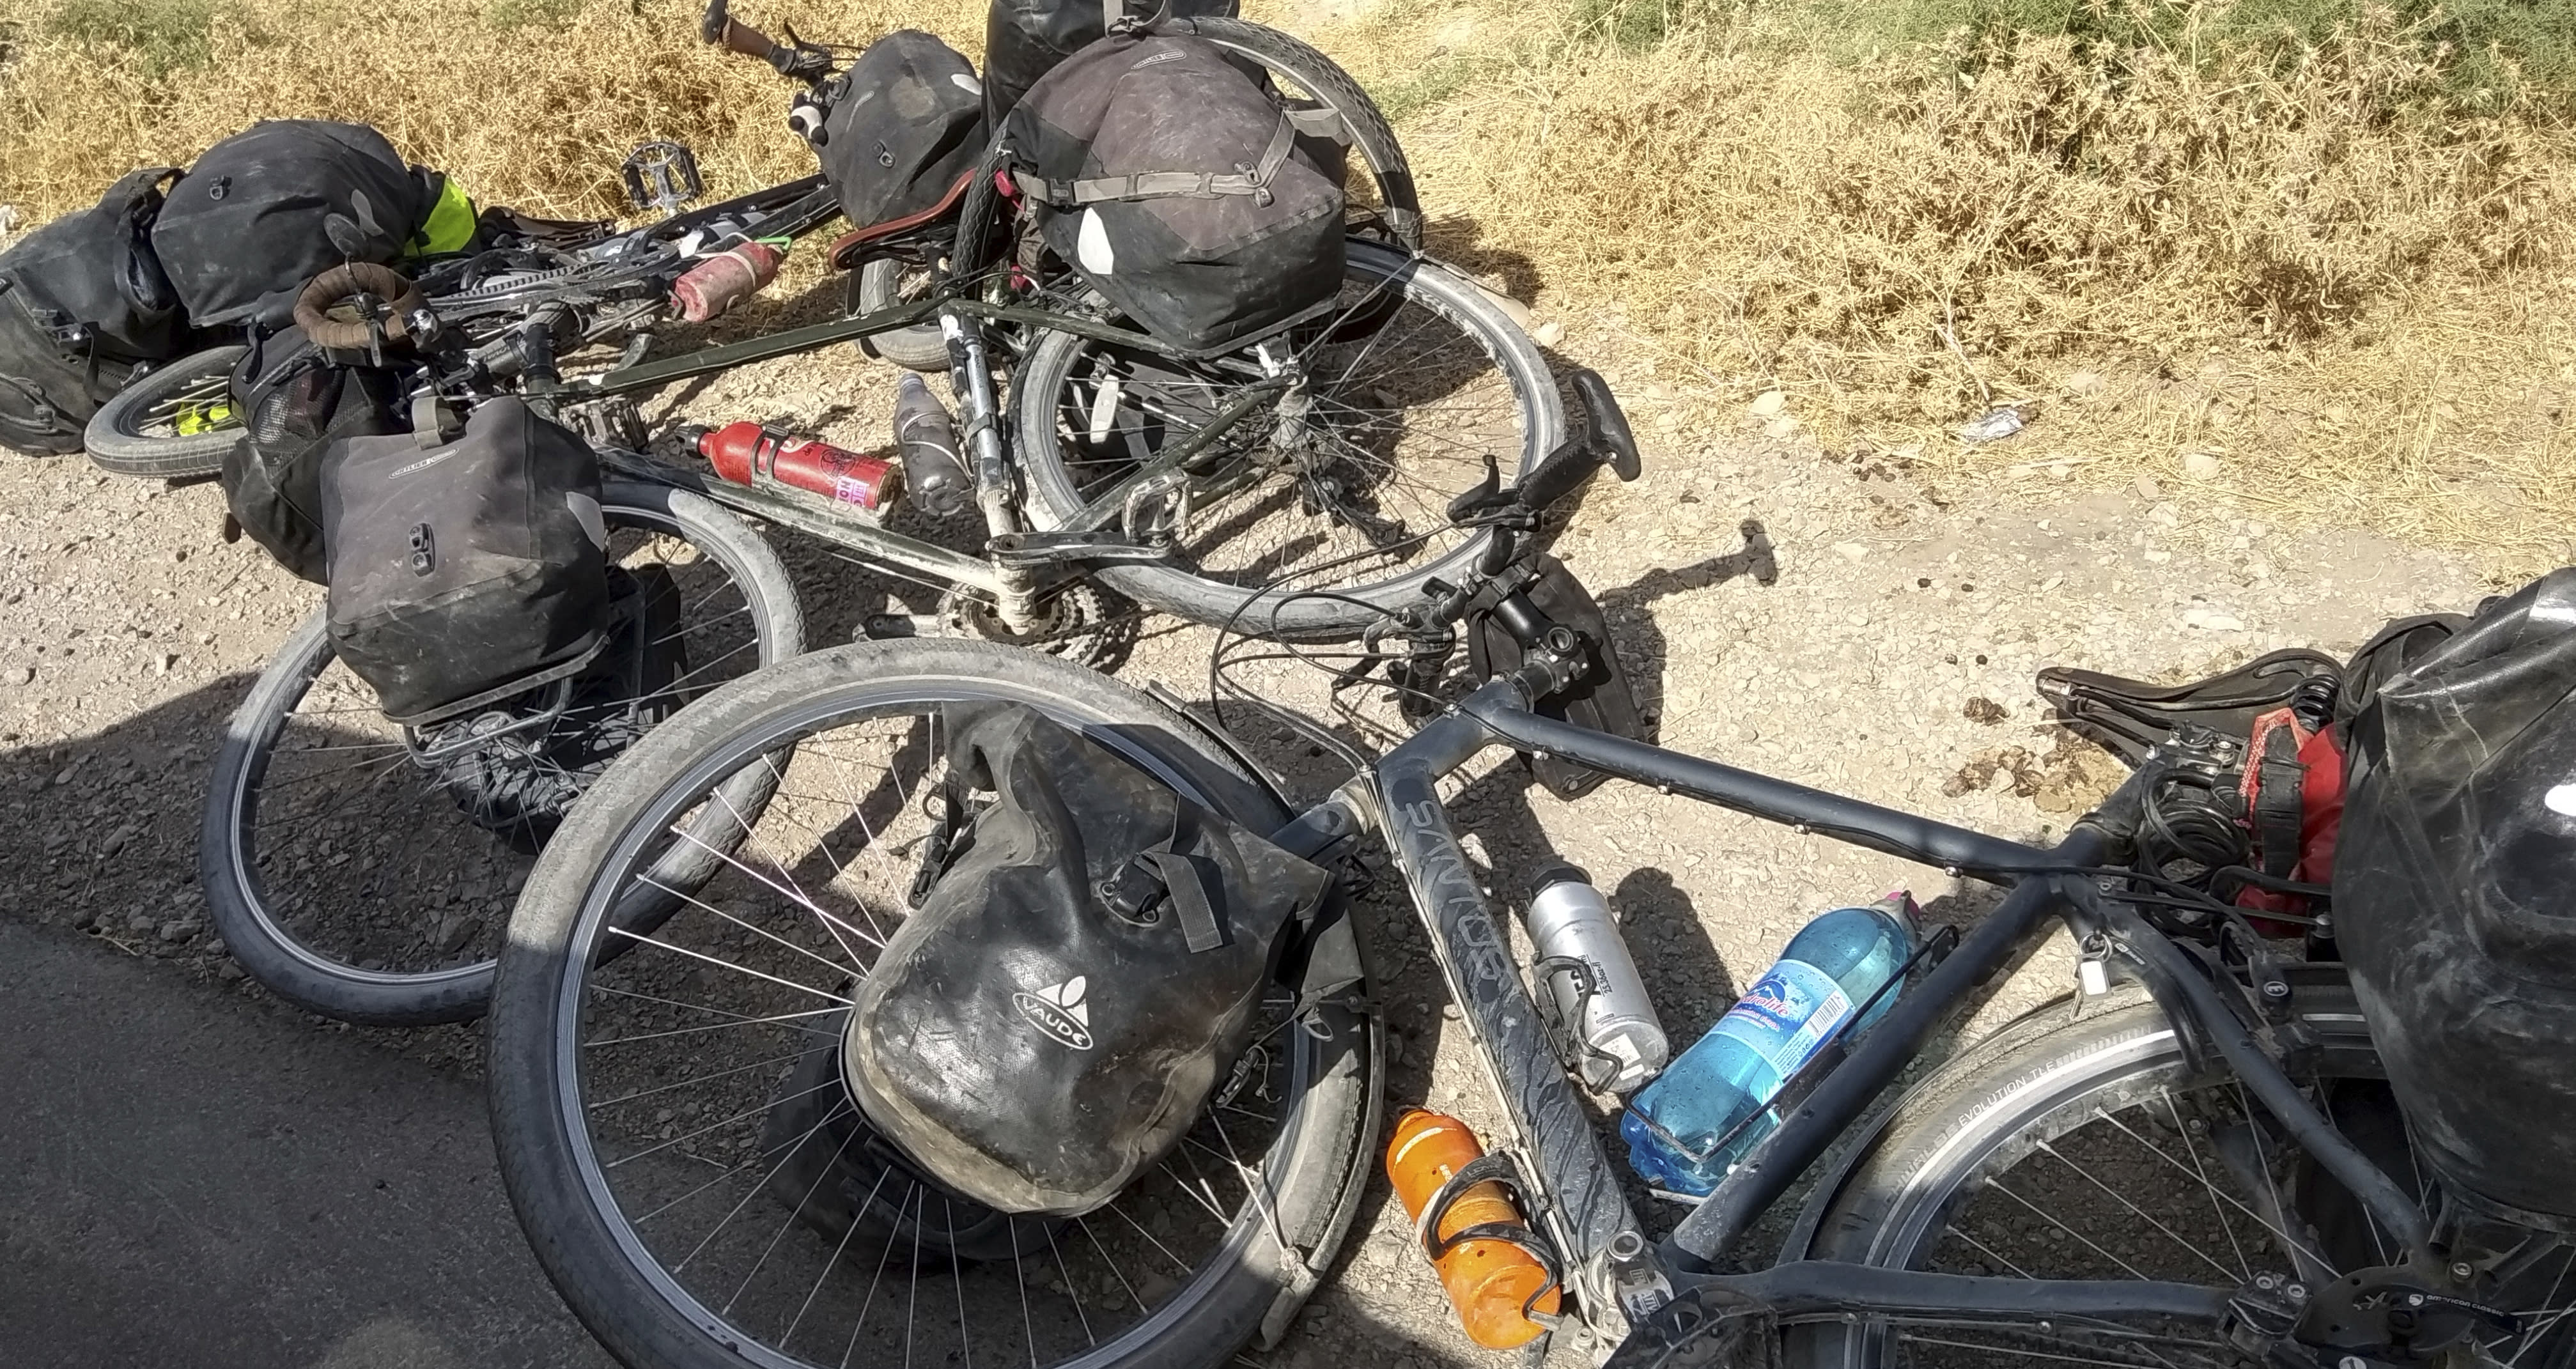 In this photo taken on Sunday, July 29, 2018, cycles are left where four tourists were killed when a car rammed into a group of foreigners on bicycles south of the capital of Dushanbe, Tajikistan. The Islamic State group on Tuesday claimed responsibility for a car-and-knife attack on Western tourists cycling in Tajikistan that killed two Americans and two Europeans. (AP Photo/Zuly Rahmatova)